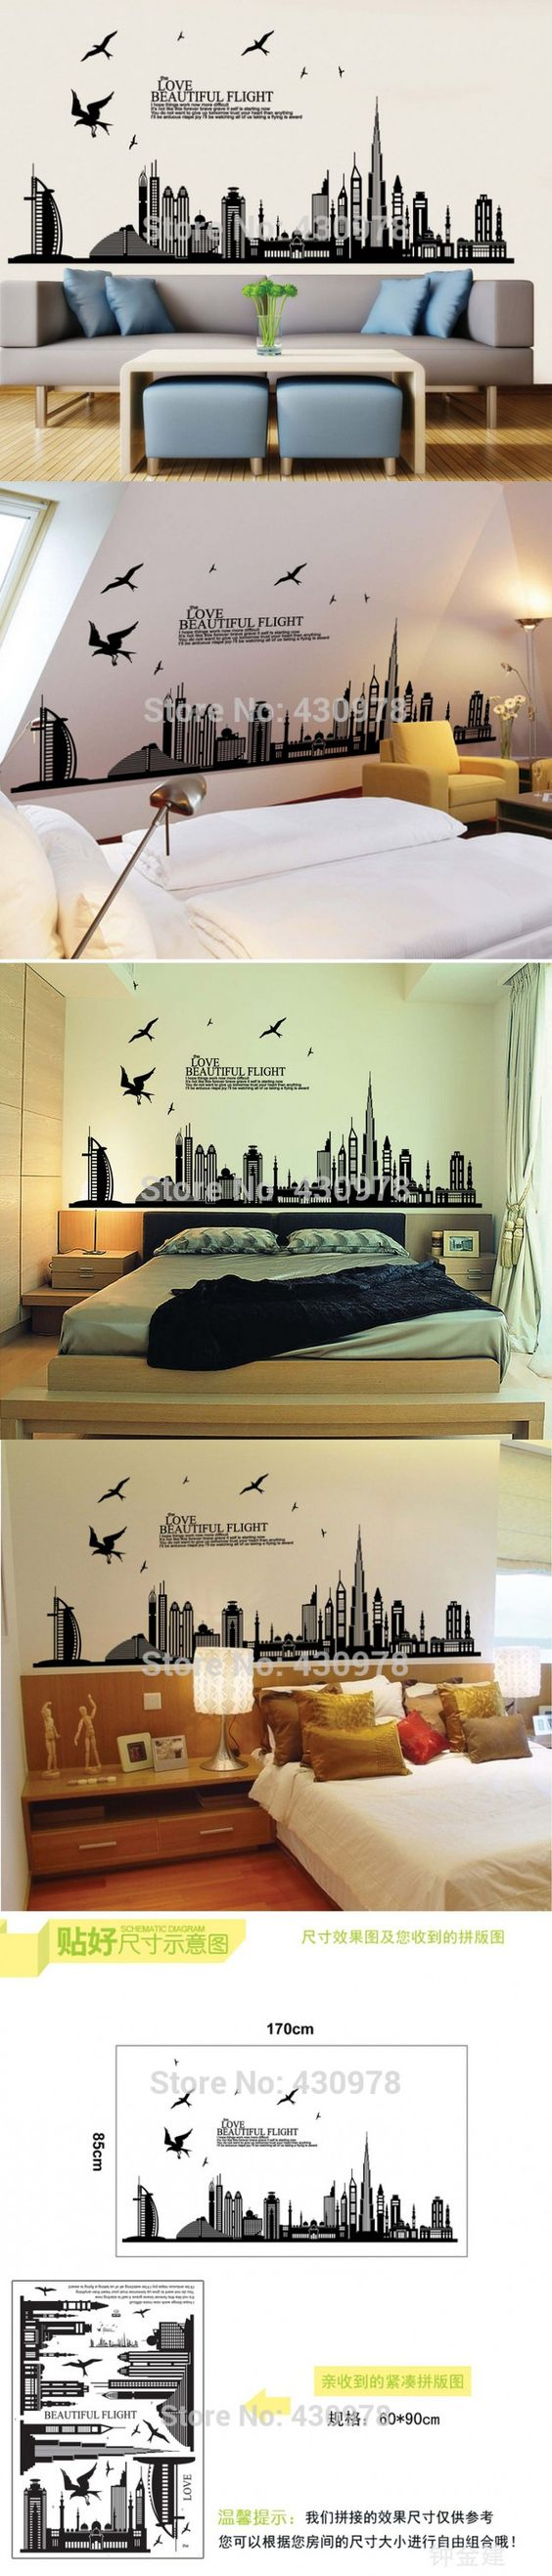 New York building architectural wall sticker home decoration creative black wallpaper home decorations JM7280 size 60*90 $7.98